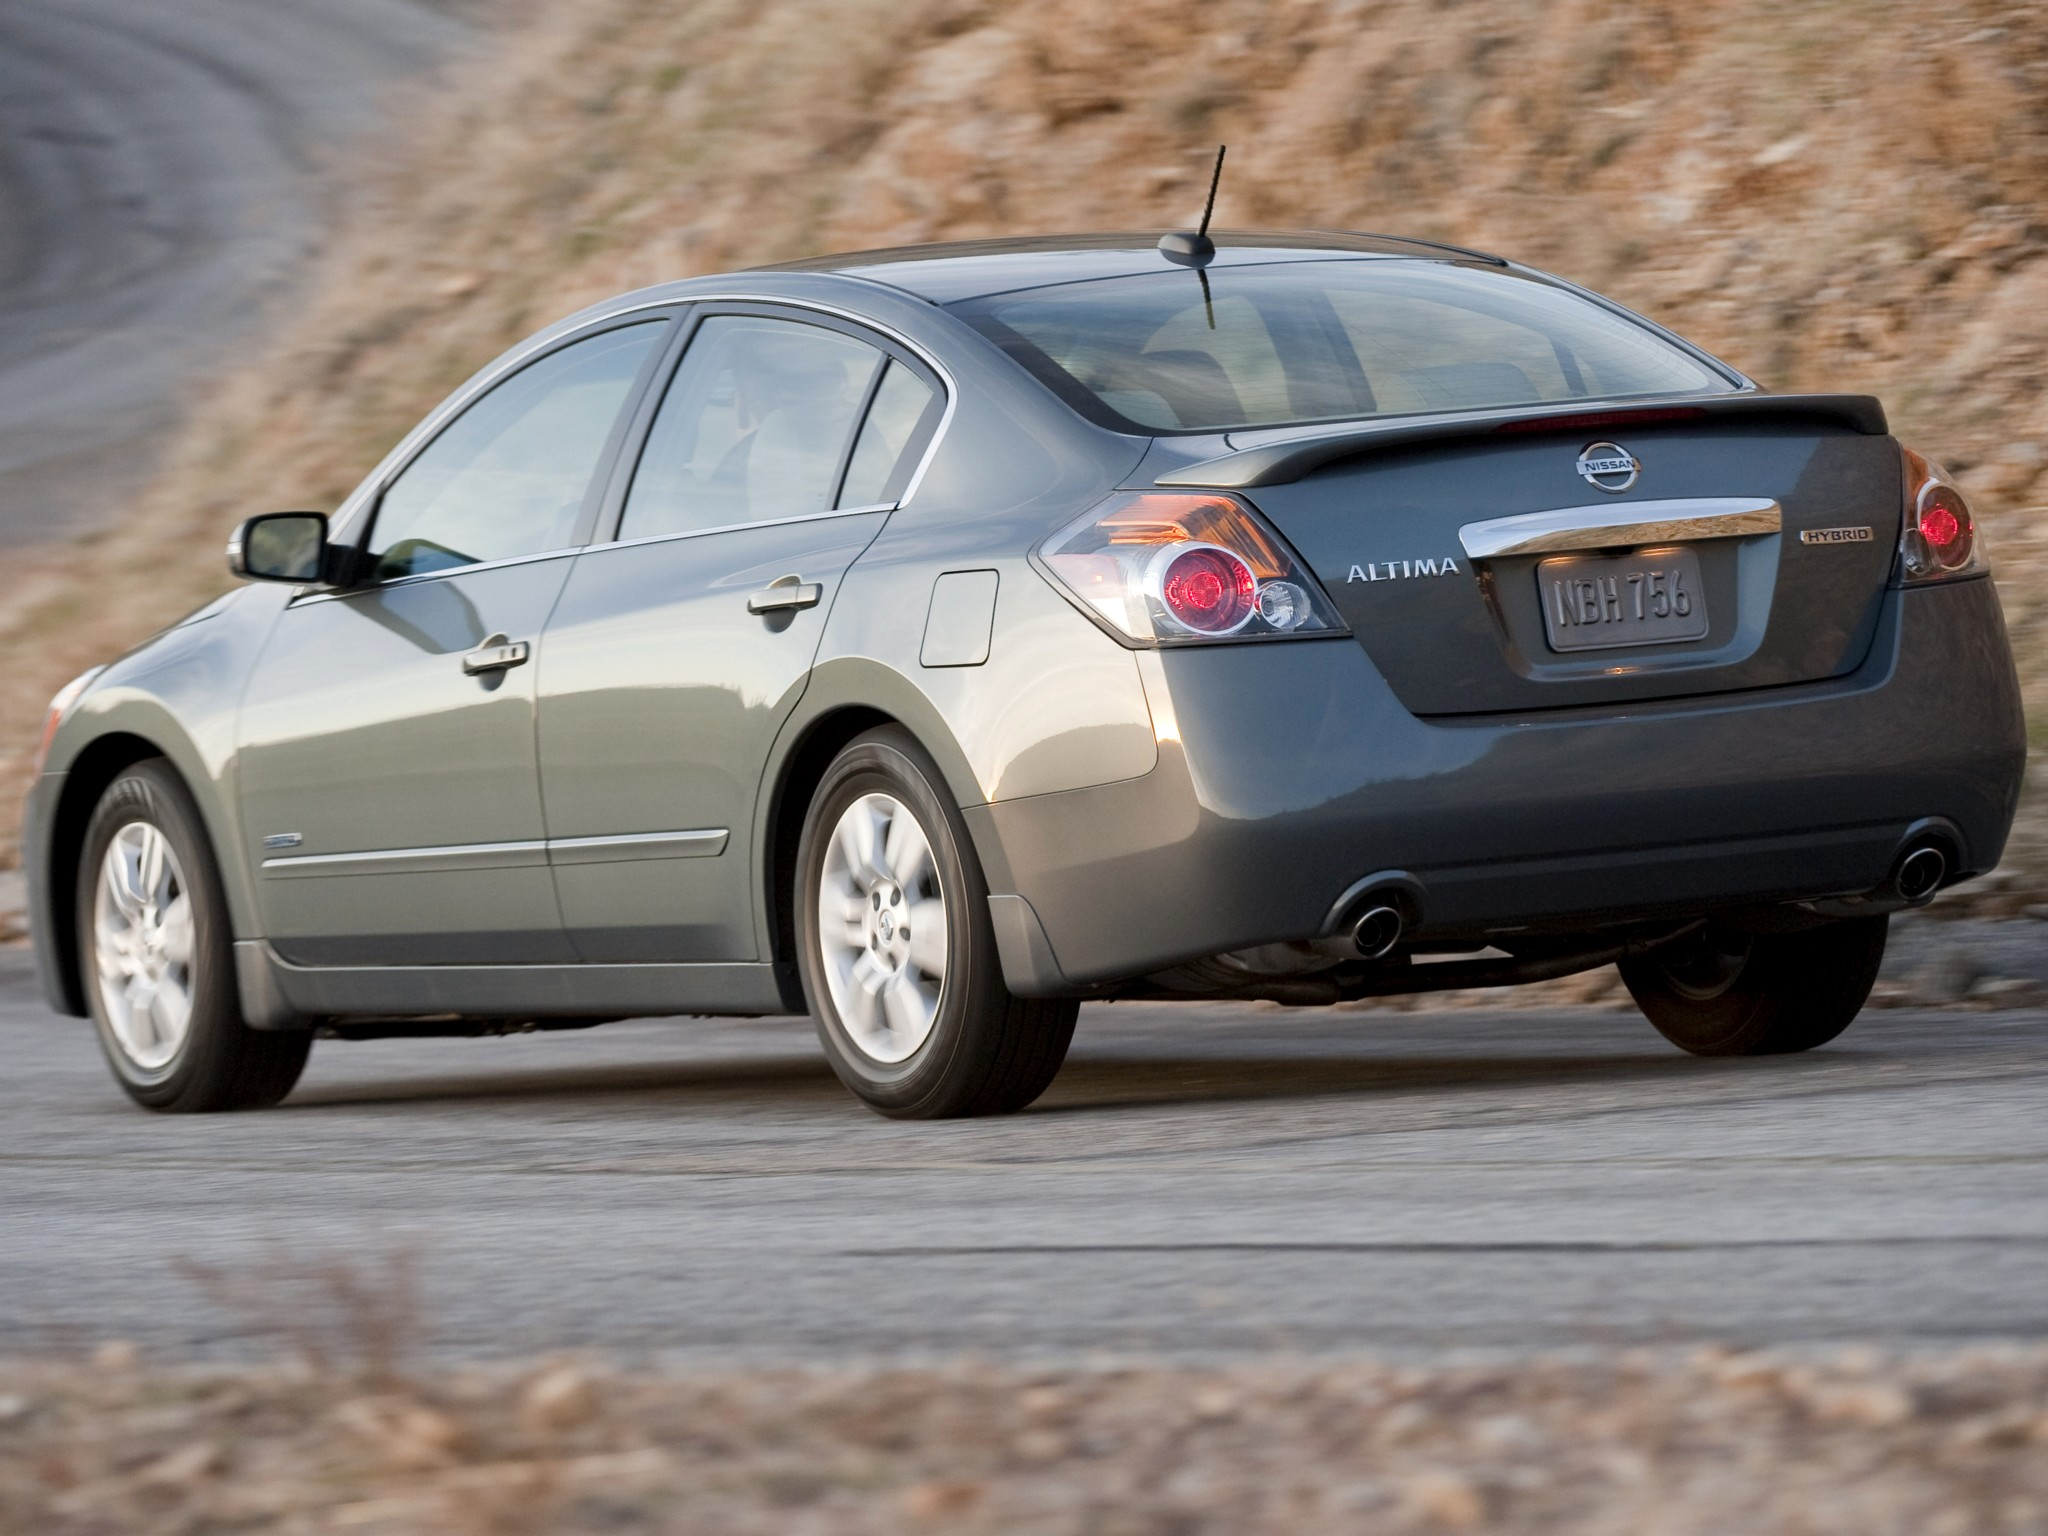 Nissan Altima Transmission >> NISSAN Altima specs & photos - 2007, 2008, 2009, 2010, 2011, 2012 - autoevolution